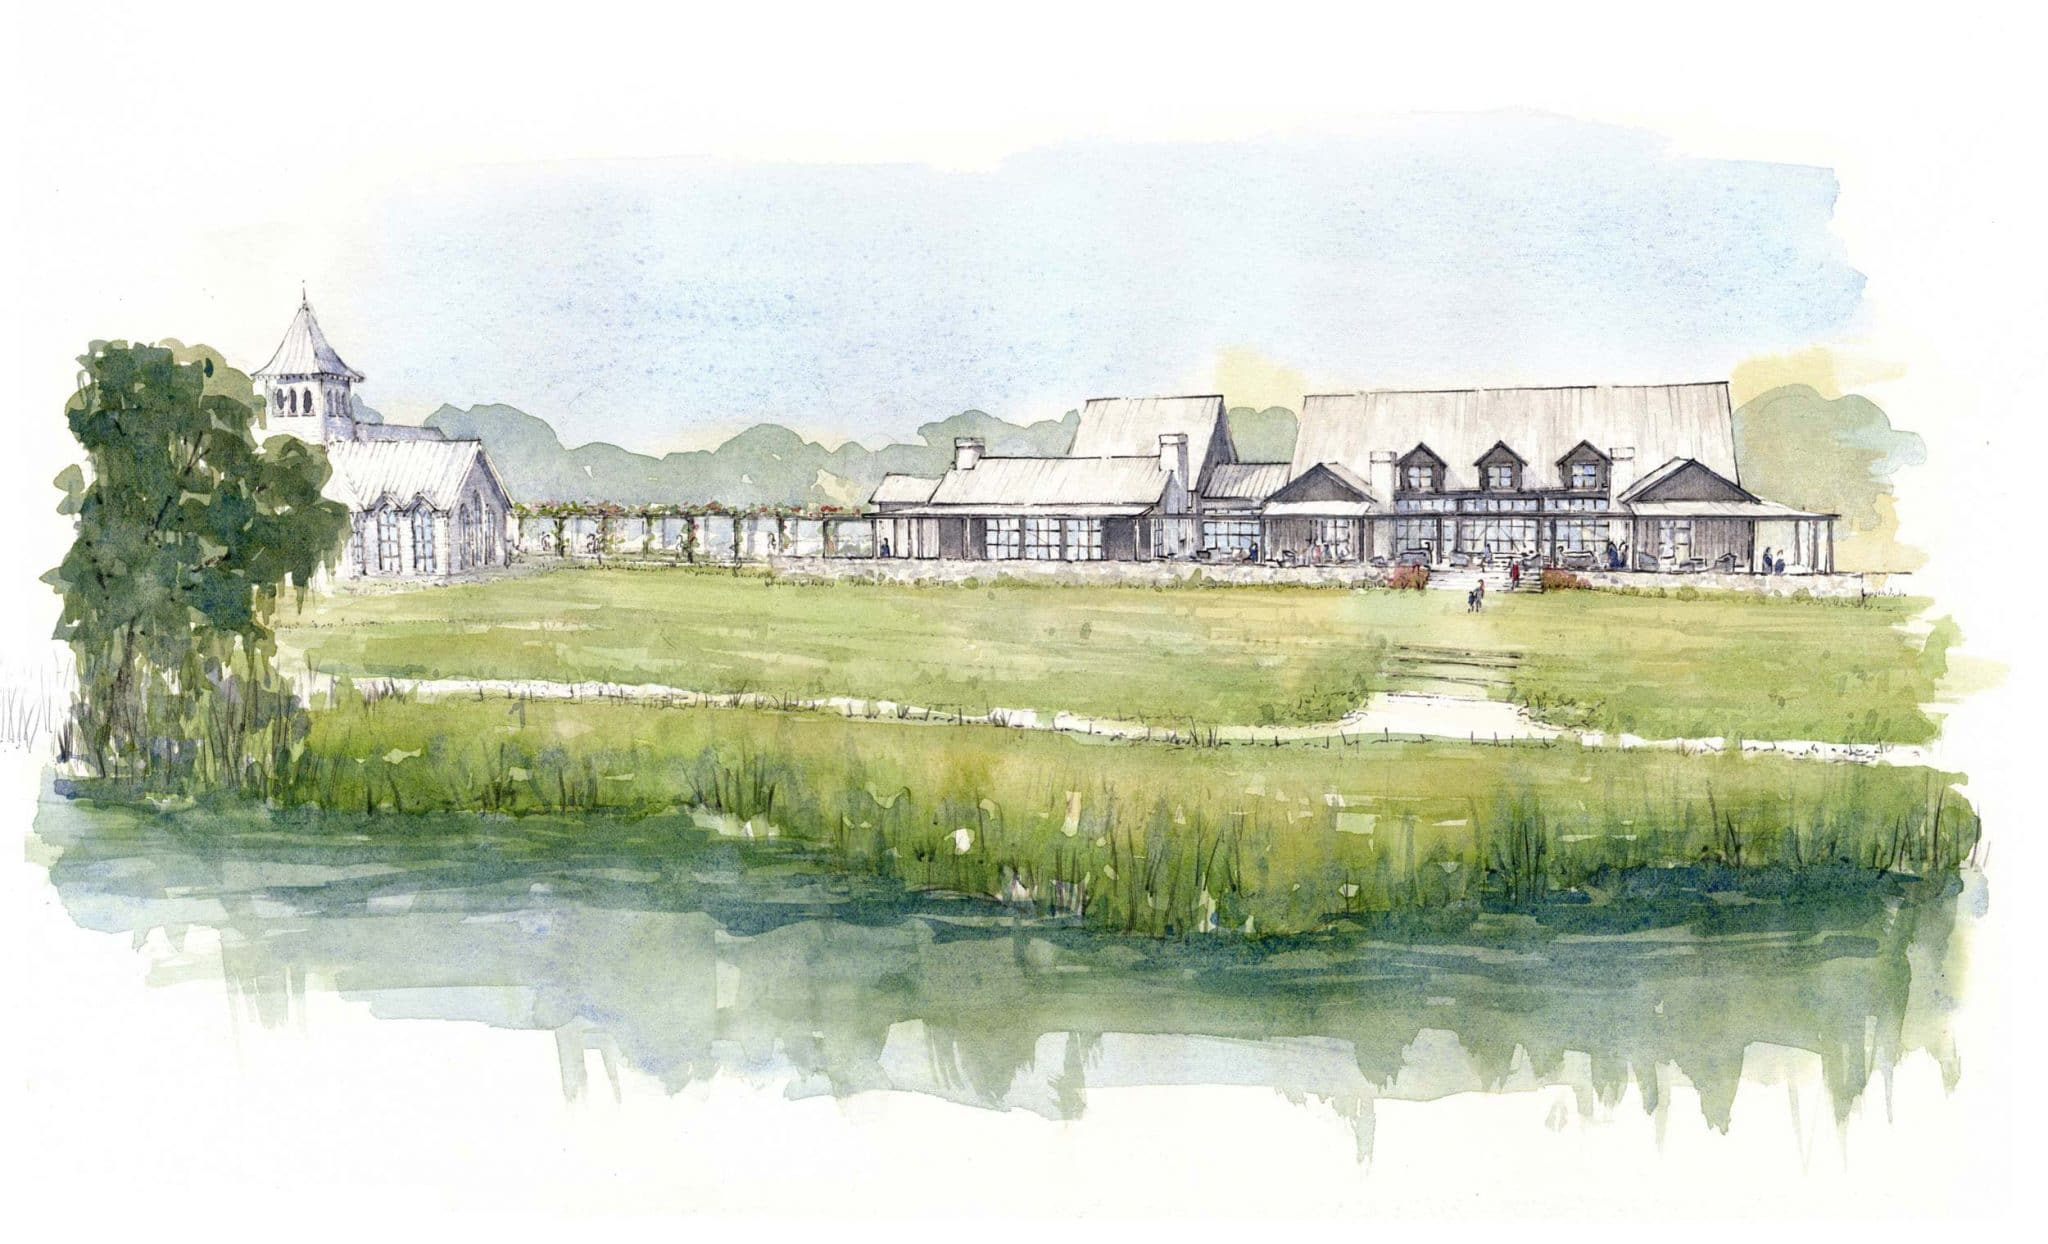 rendering of the hall and chapel at kiawah river development